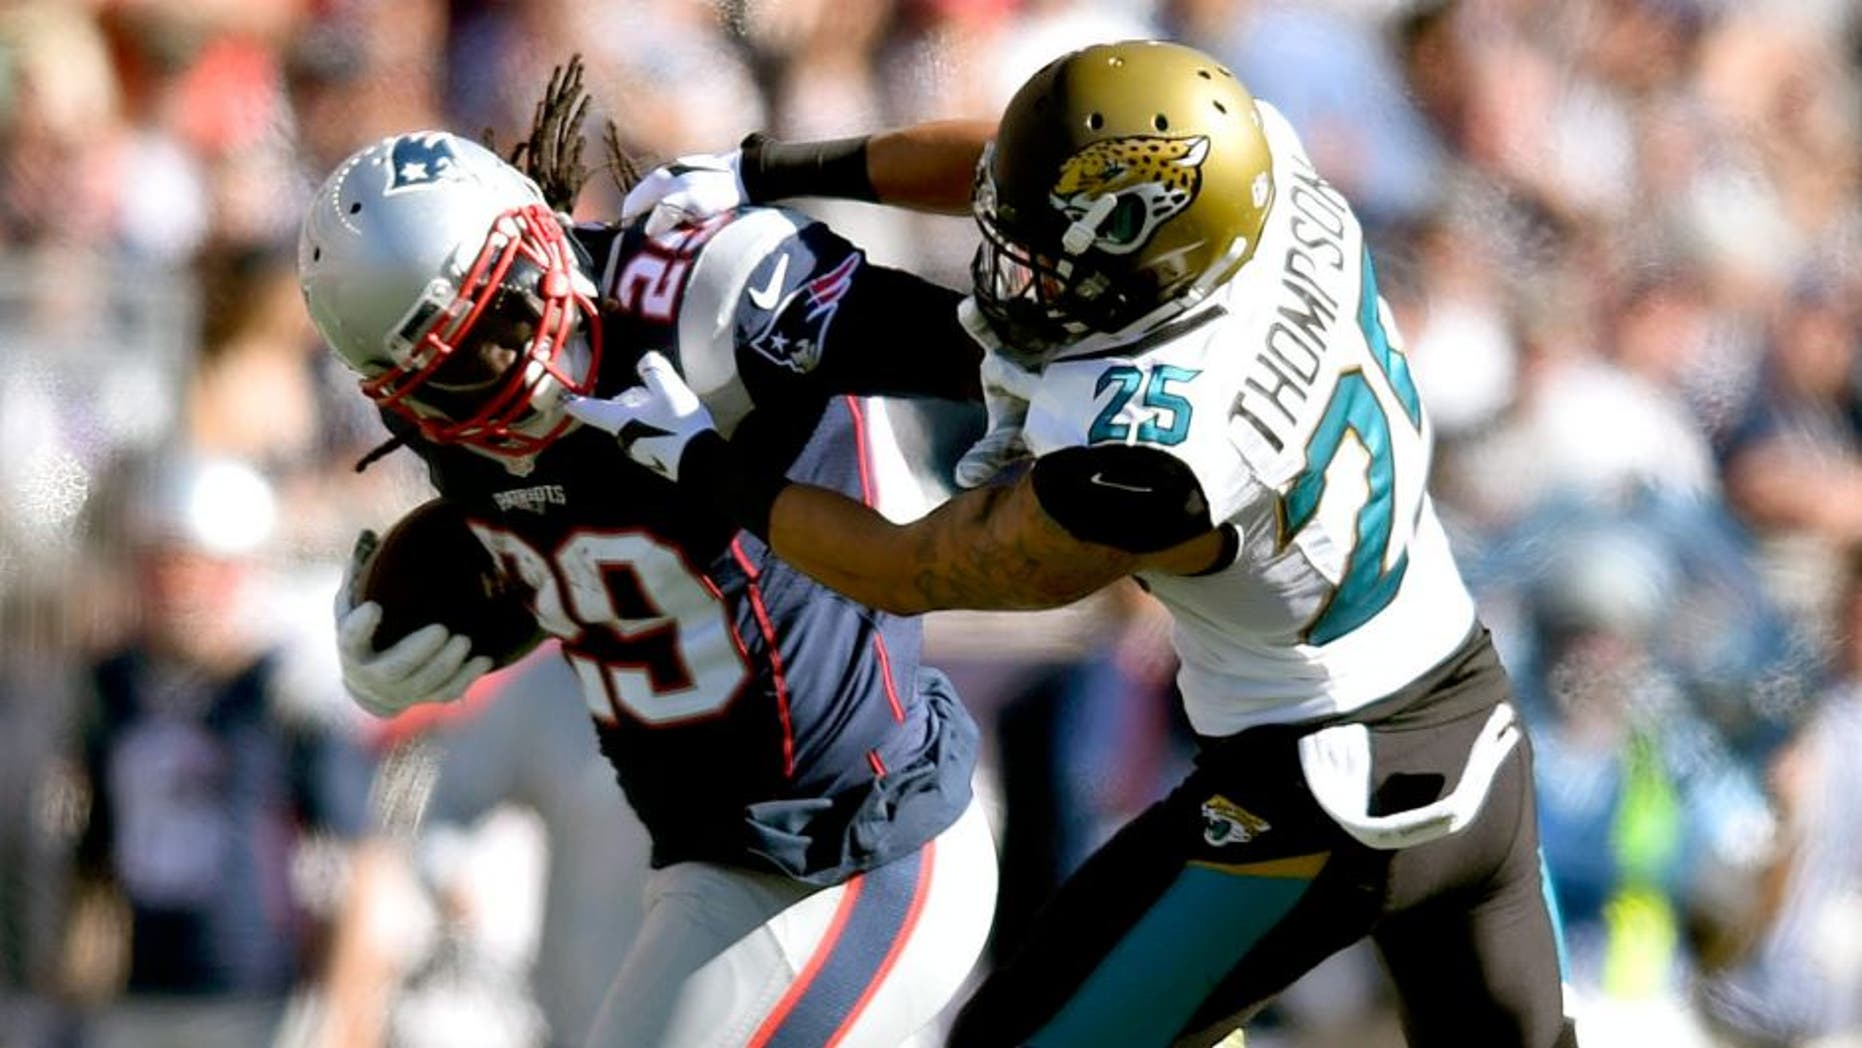 Sep 27, 2015; Foxborough, MA, USA; New England Patriots running back LeGarrette Blount (29) carries the ball as Jacksonville Jaguars defensive back Peyton Thompson (25) defends in the third quarter at Gillette Stadium. New England defeated Jacksonville 51-17. Mandatory Credit: James Lang-USA TODAY Sports